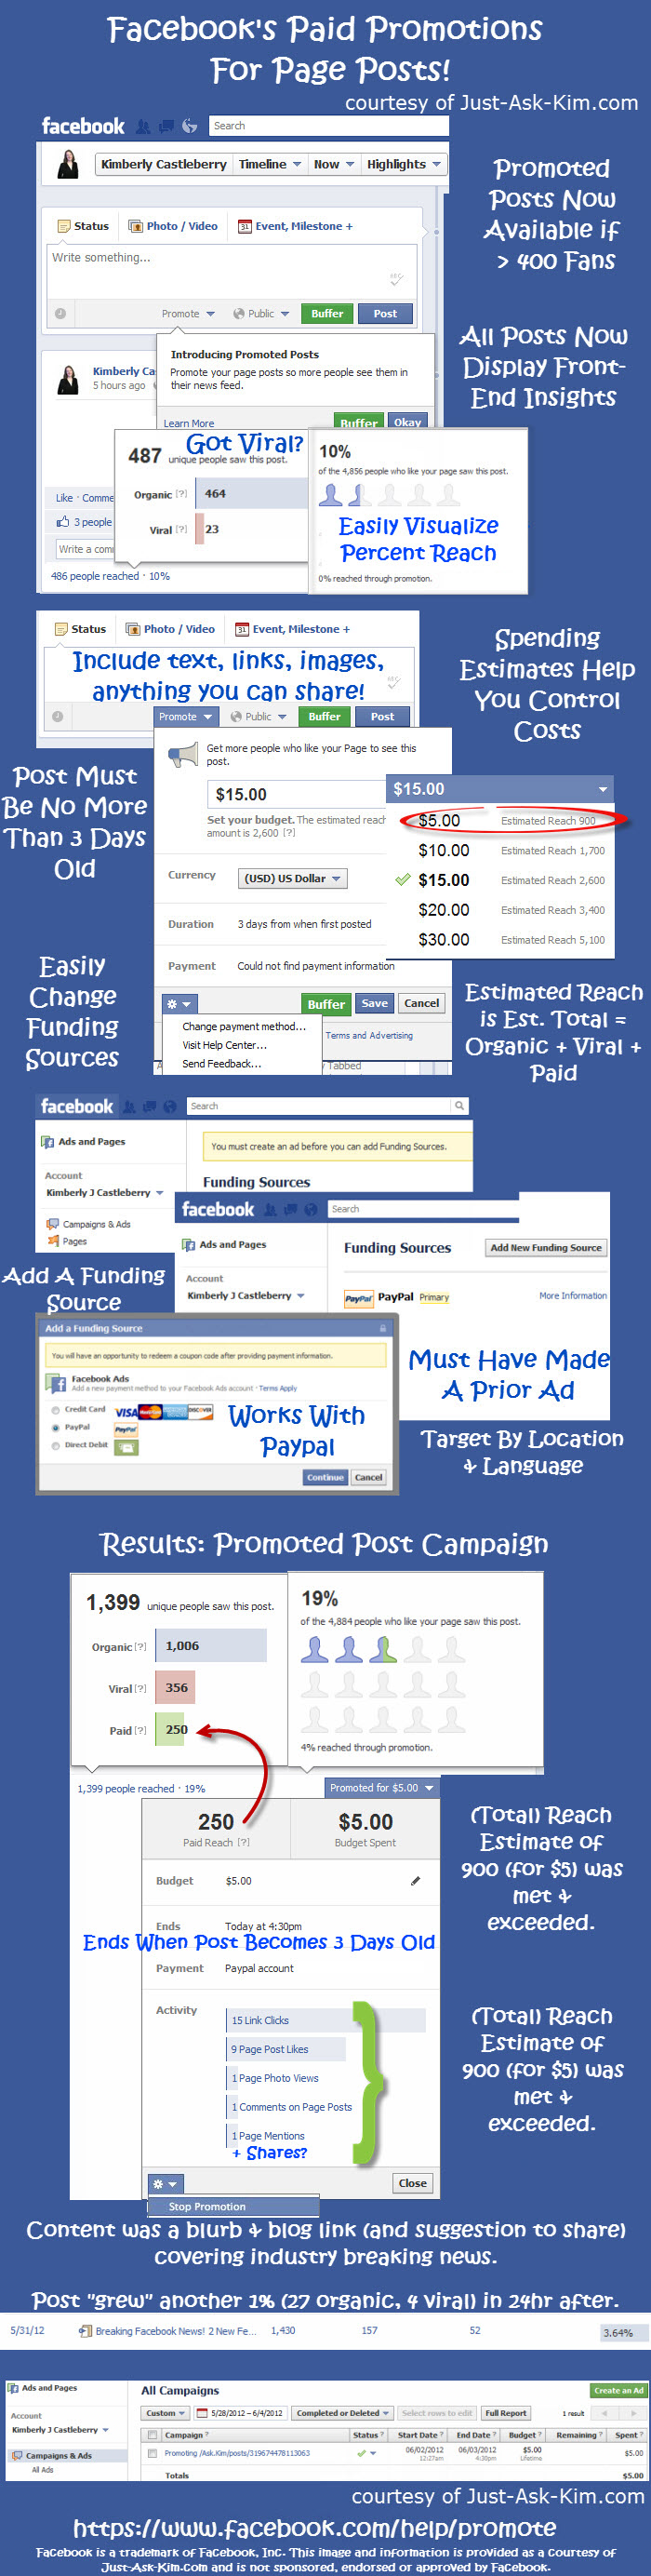 Facebook-Promoted-Posts-infographic